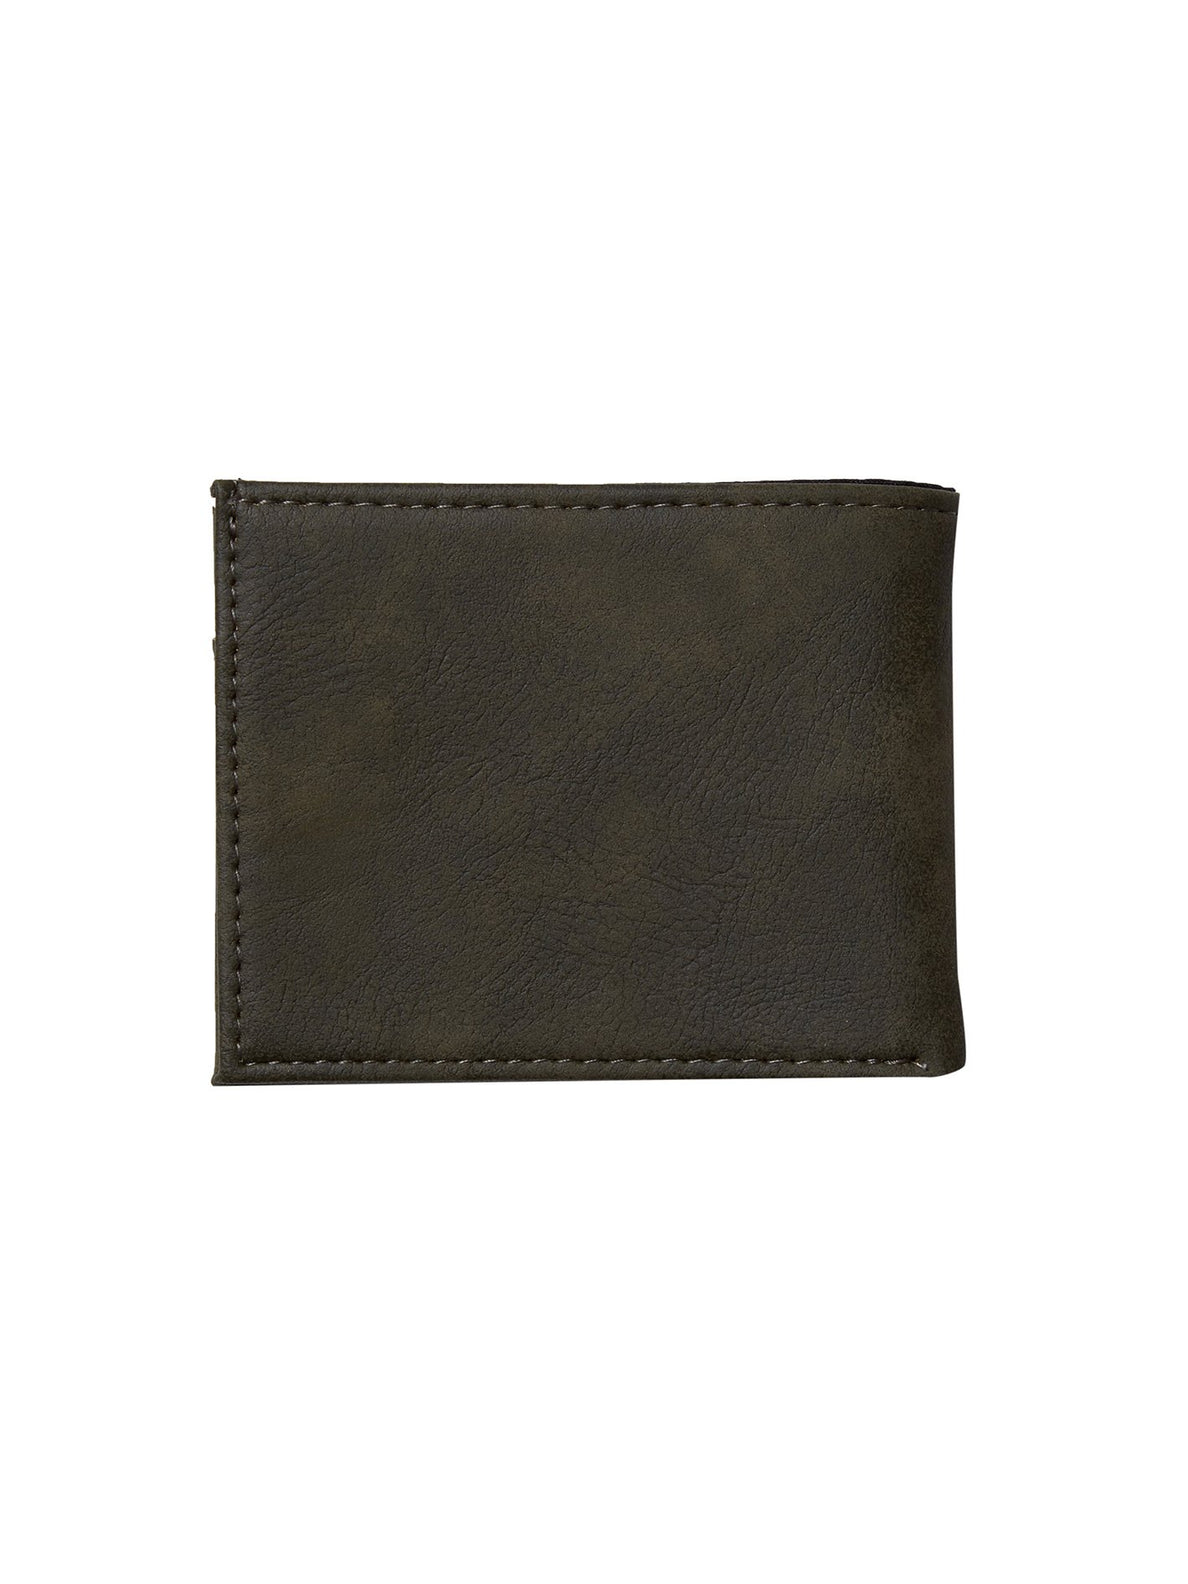 Cartera Slim Stone de PU - Military